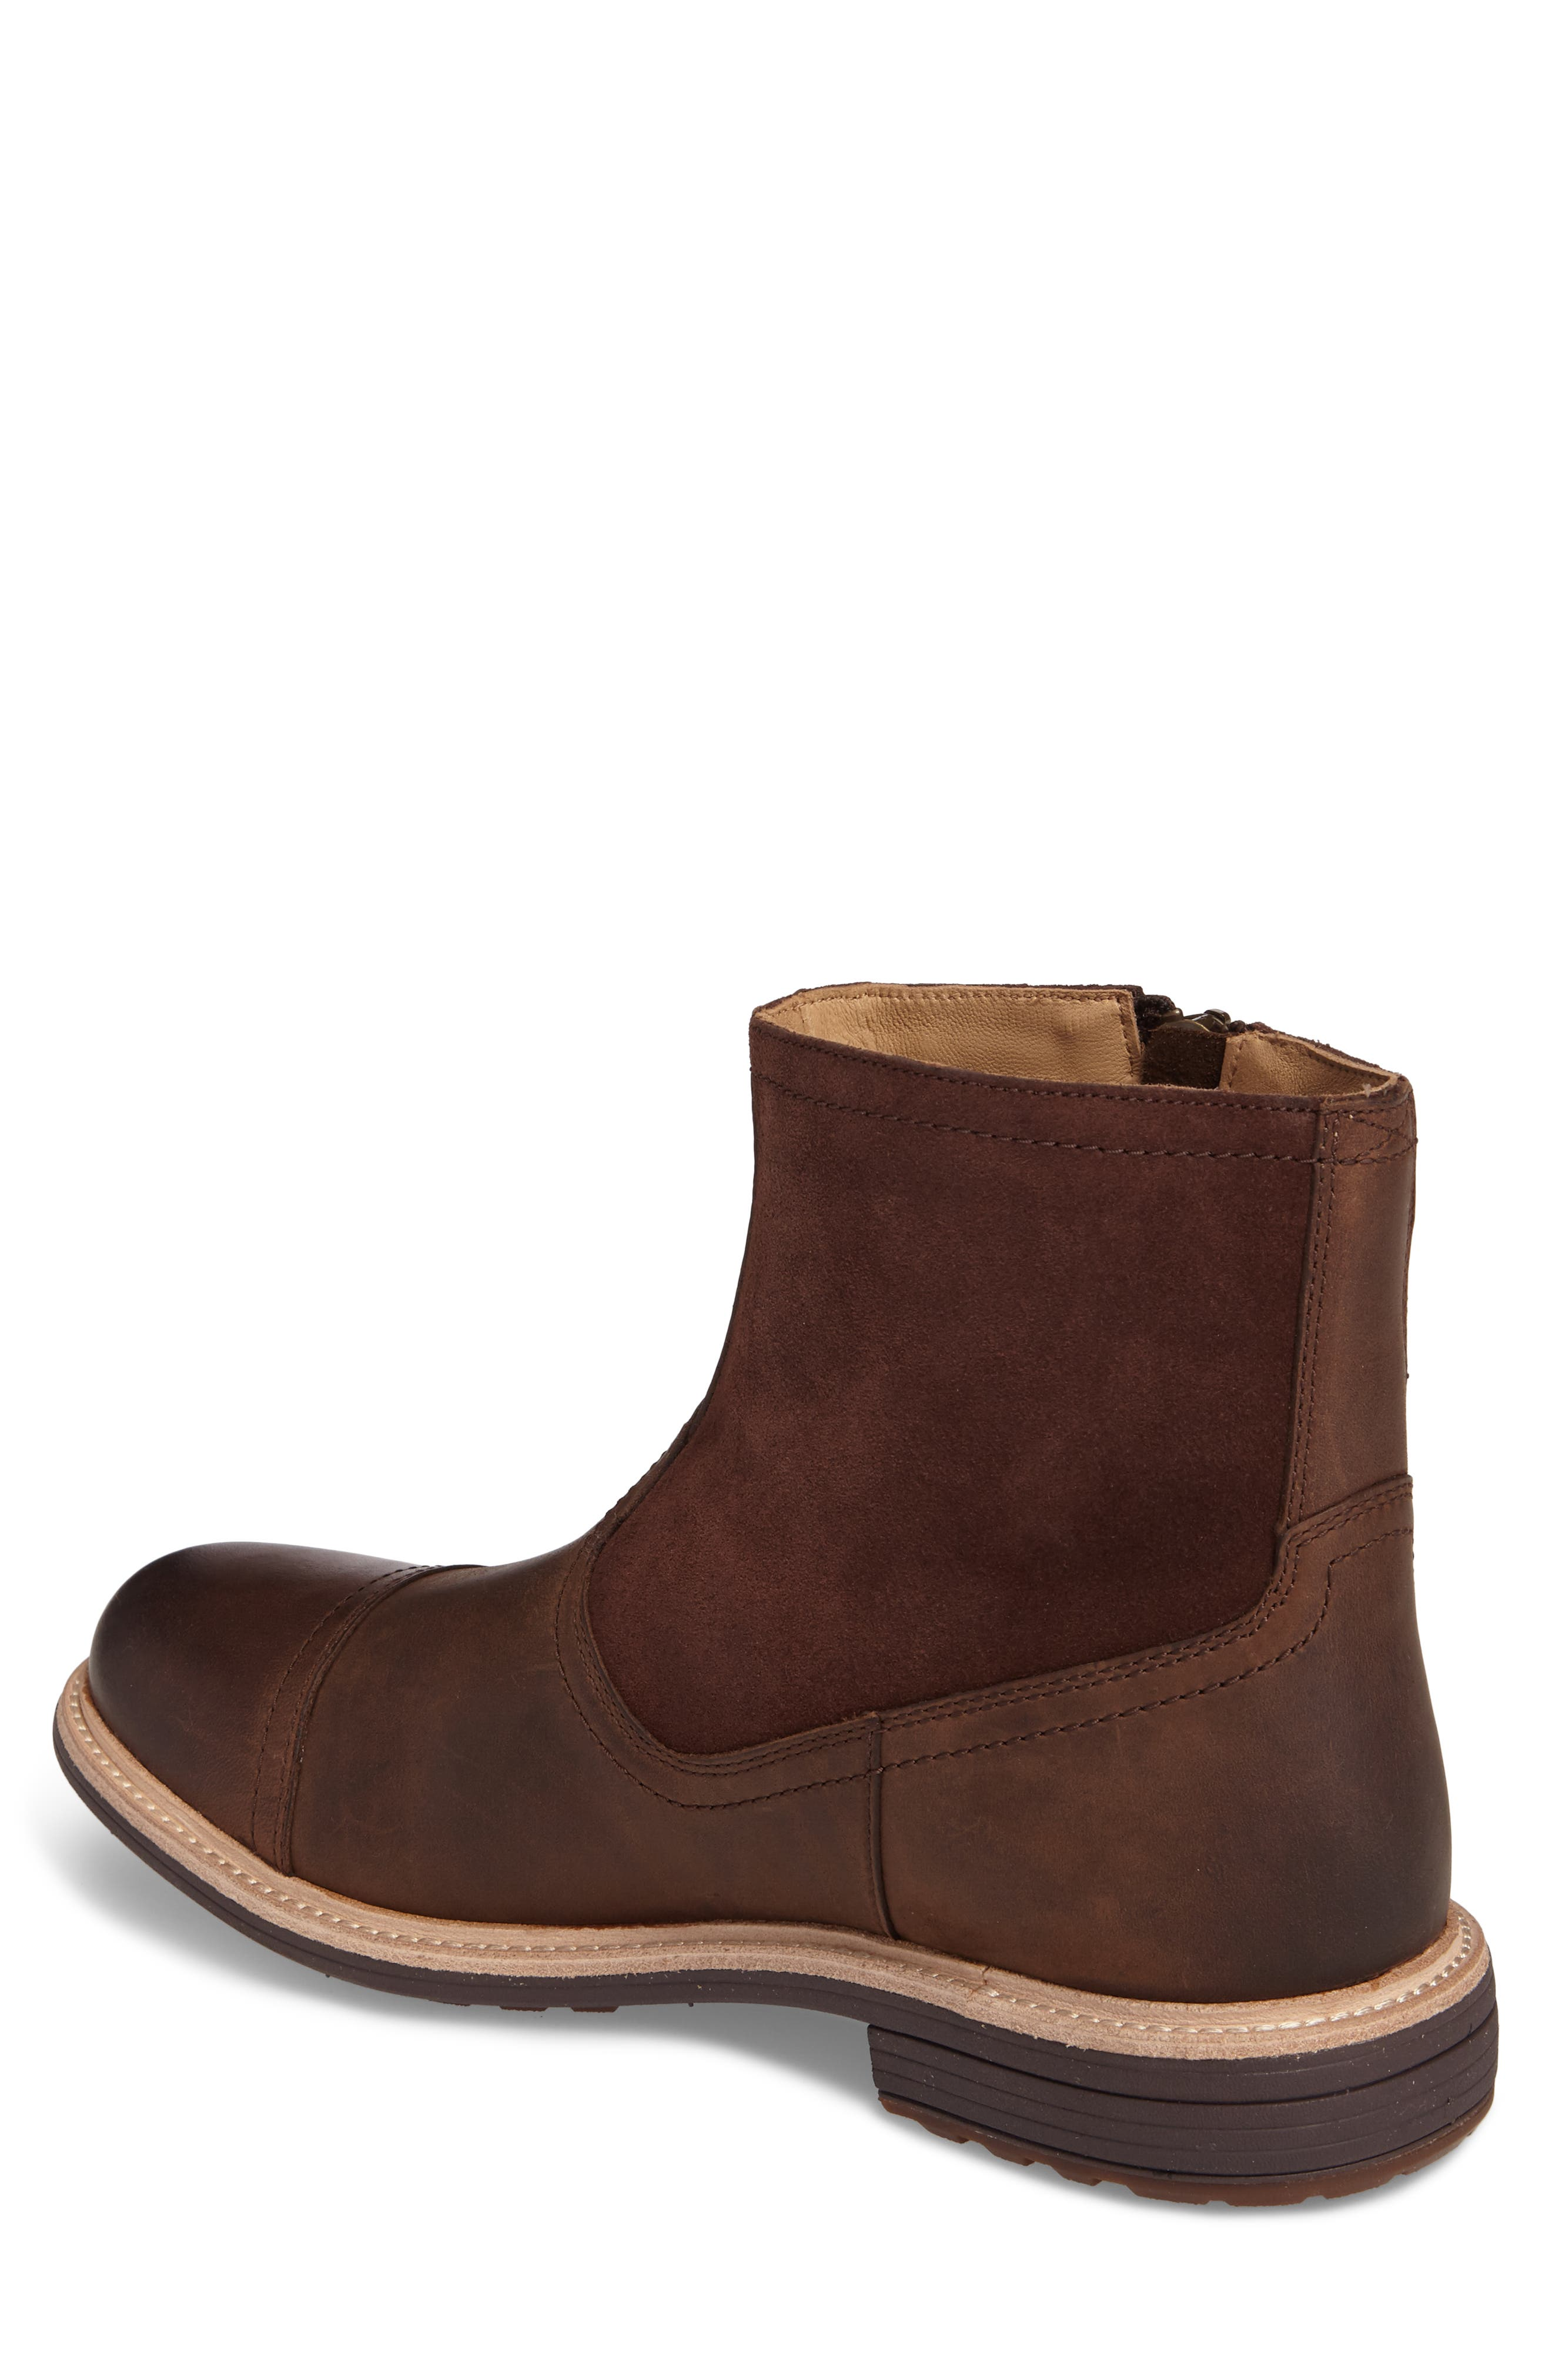 Dalvin Zip Boot with Genuine Shearling,                             Alternate thumbnail 2, color,                             Grizzly